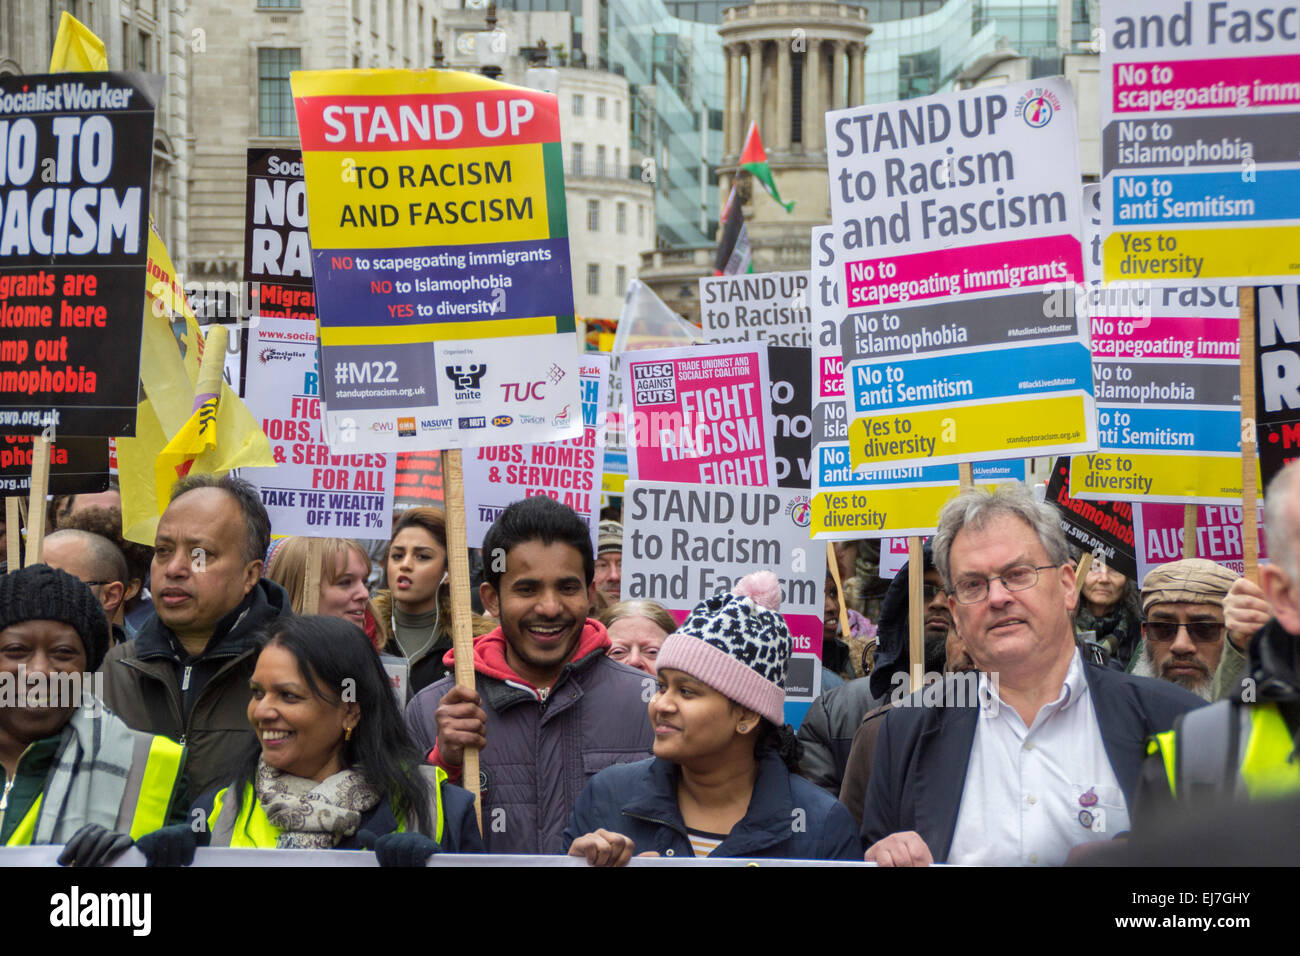 London UK, 21st March 2015: Protesters at the Stand Up To Racism & Fascism demonstration. - Stock Image